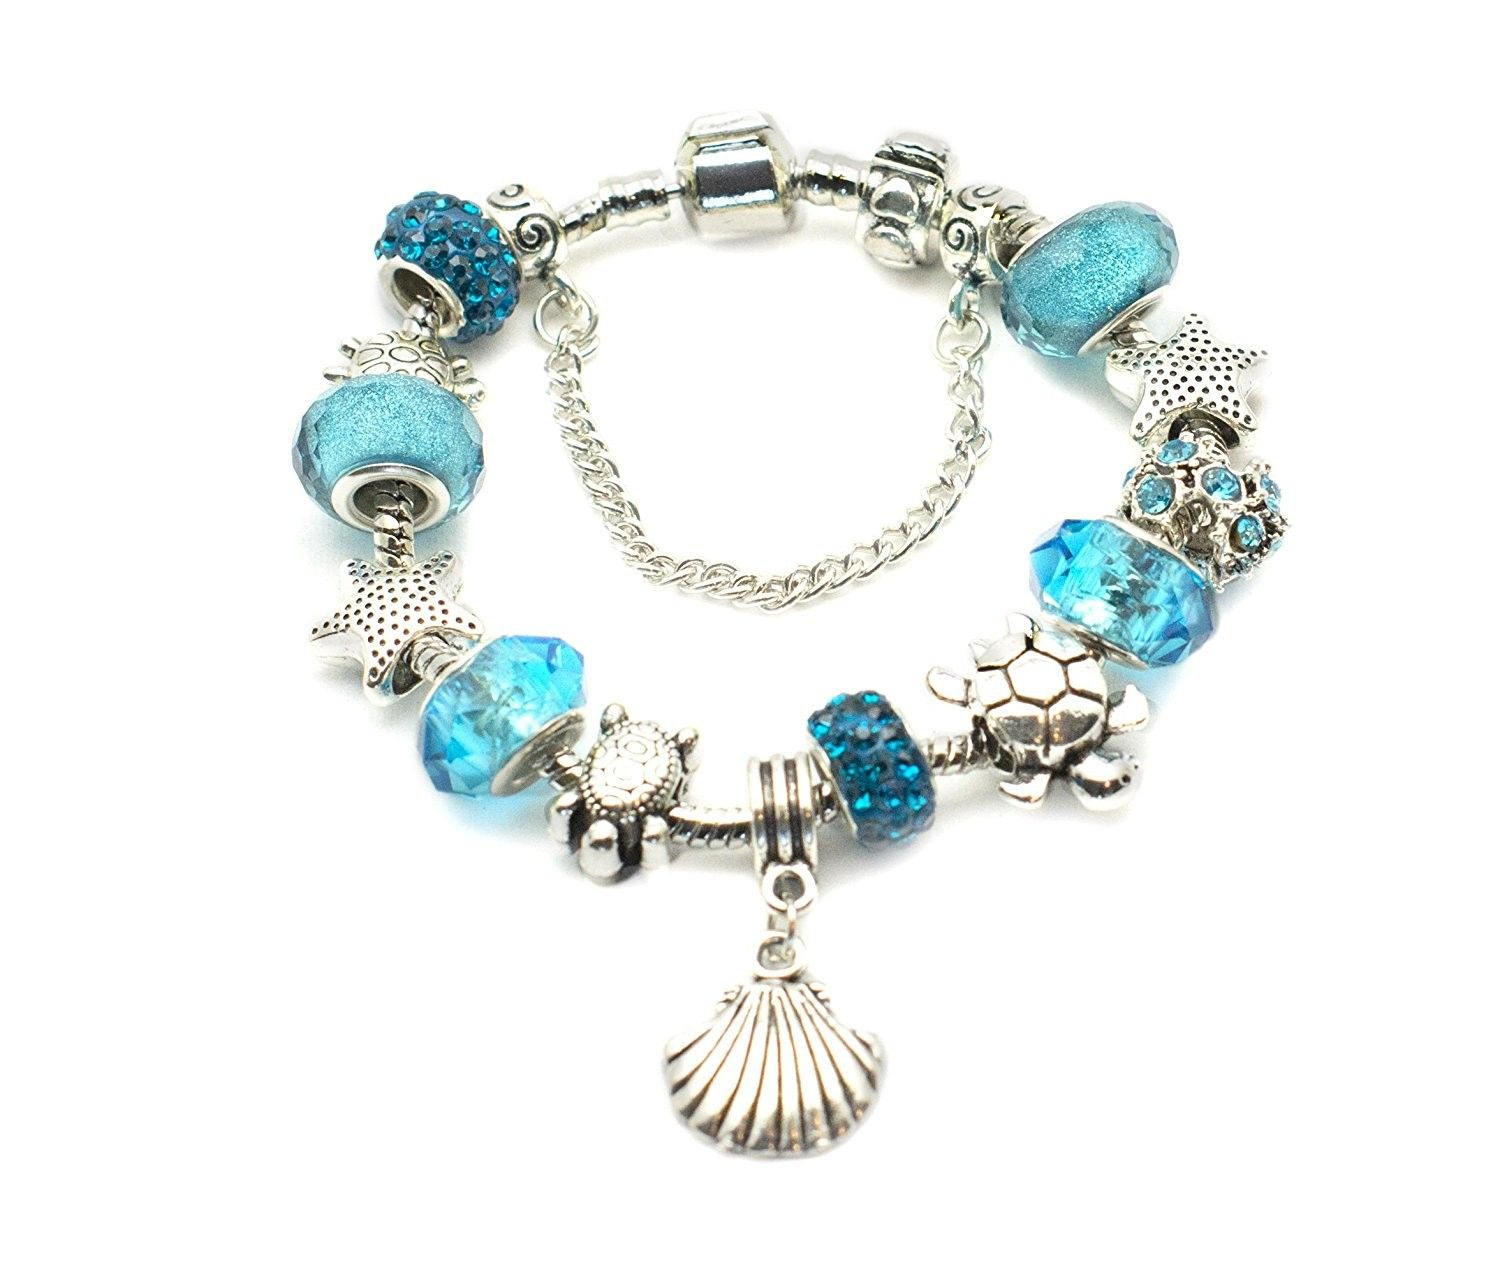 European ocean beach charm beaded bracelet for women and teen girls